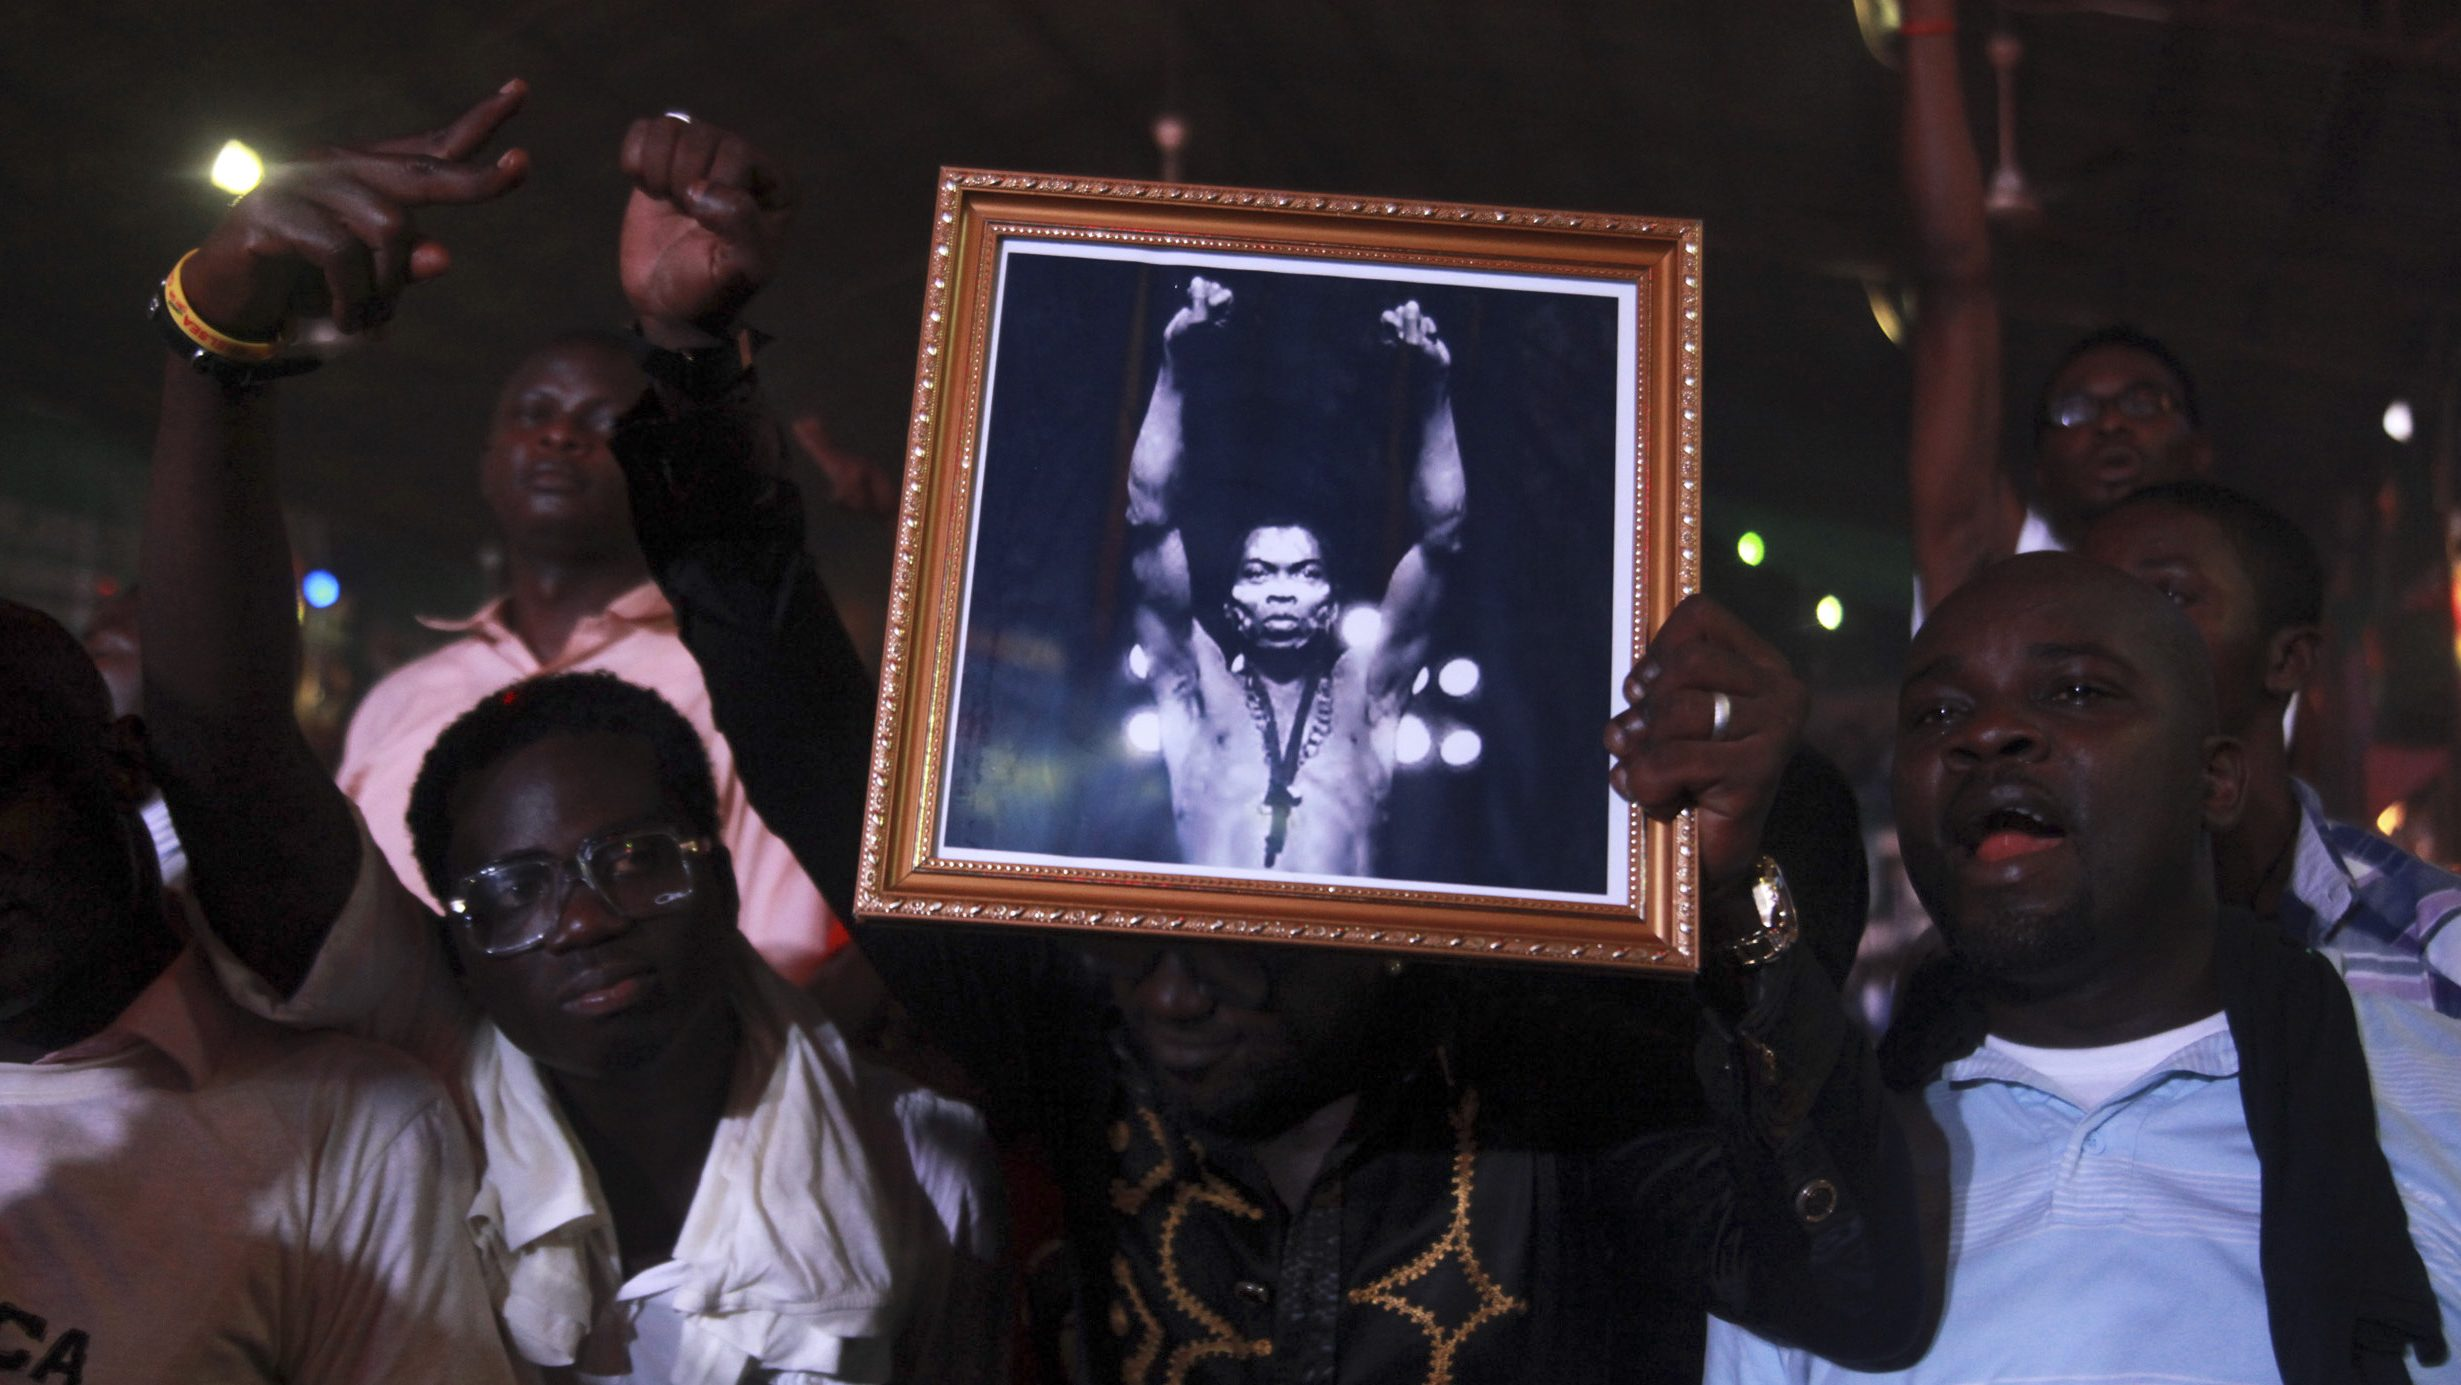 People hold up a photo of Nigeria's music legend Fela Kuti at a night show marking the end of a week-long celebration in his honour, in Lagos October 22, 2012